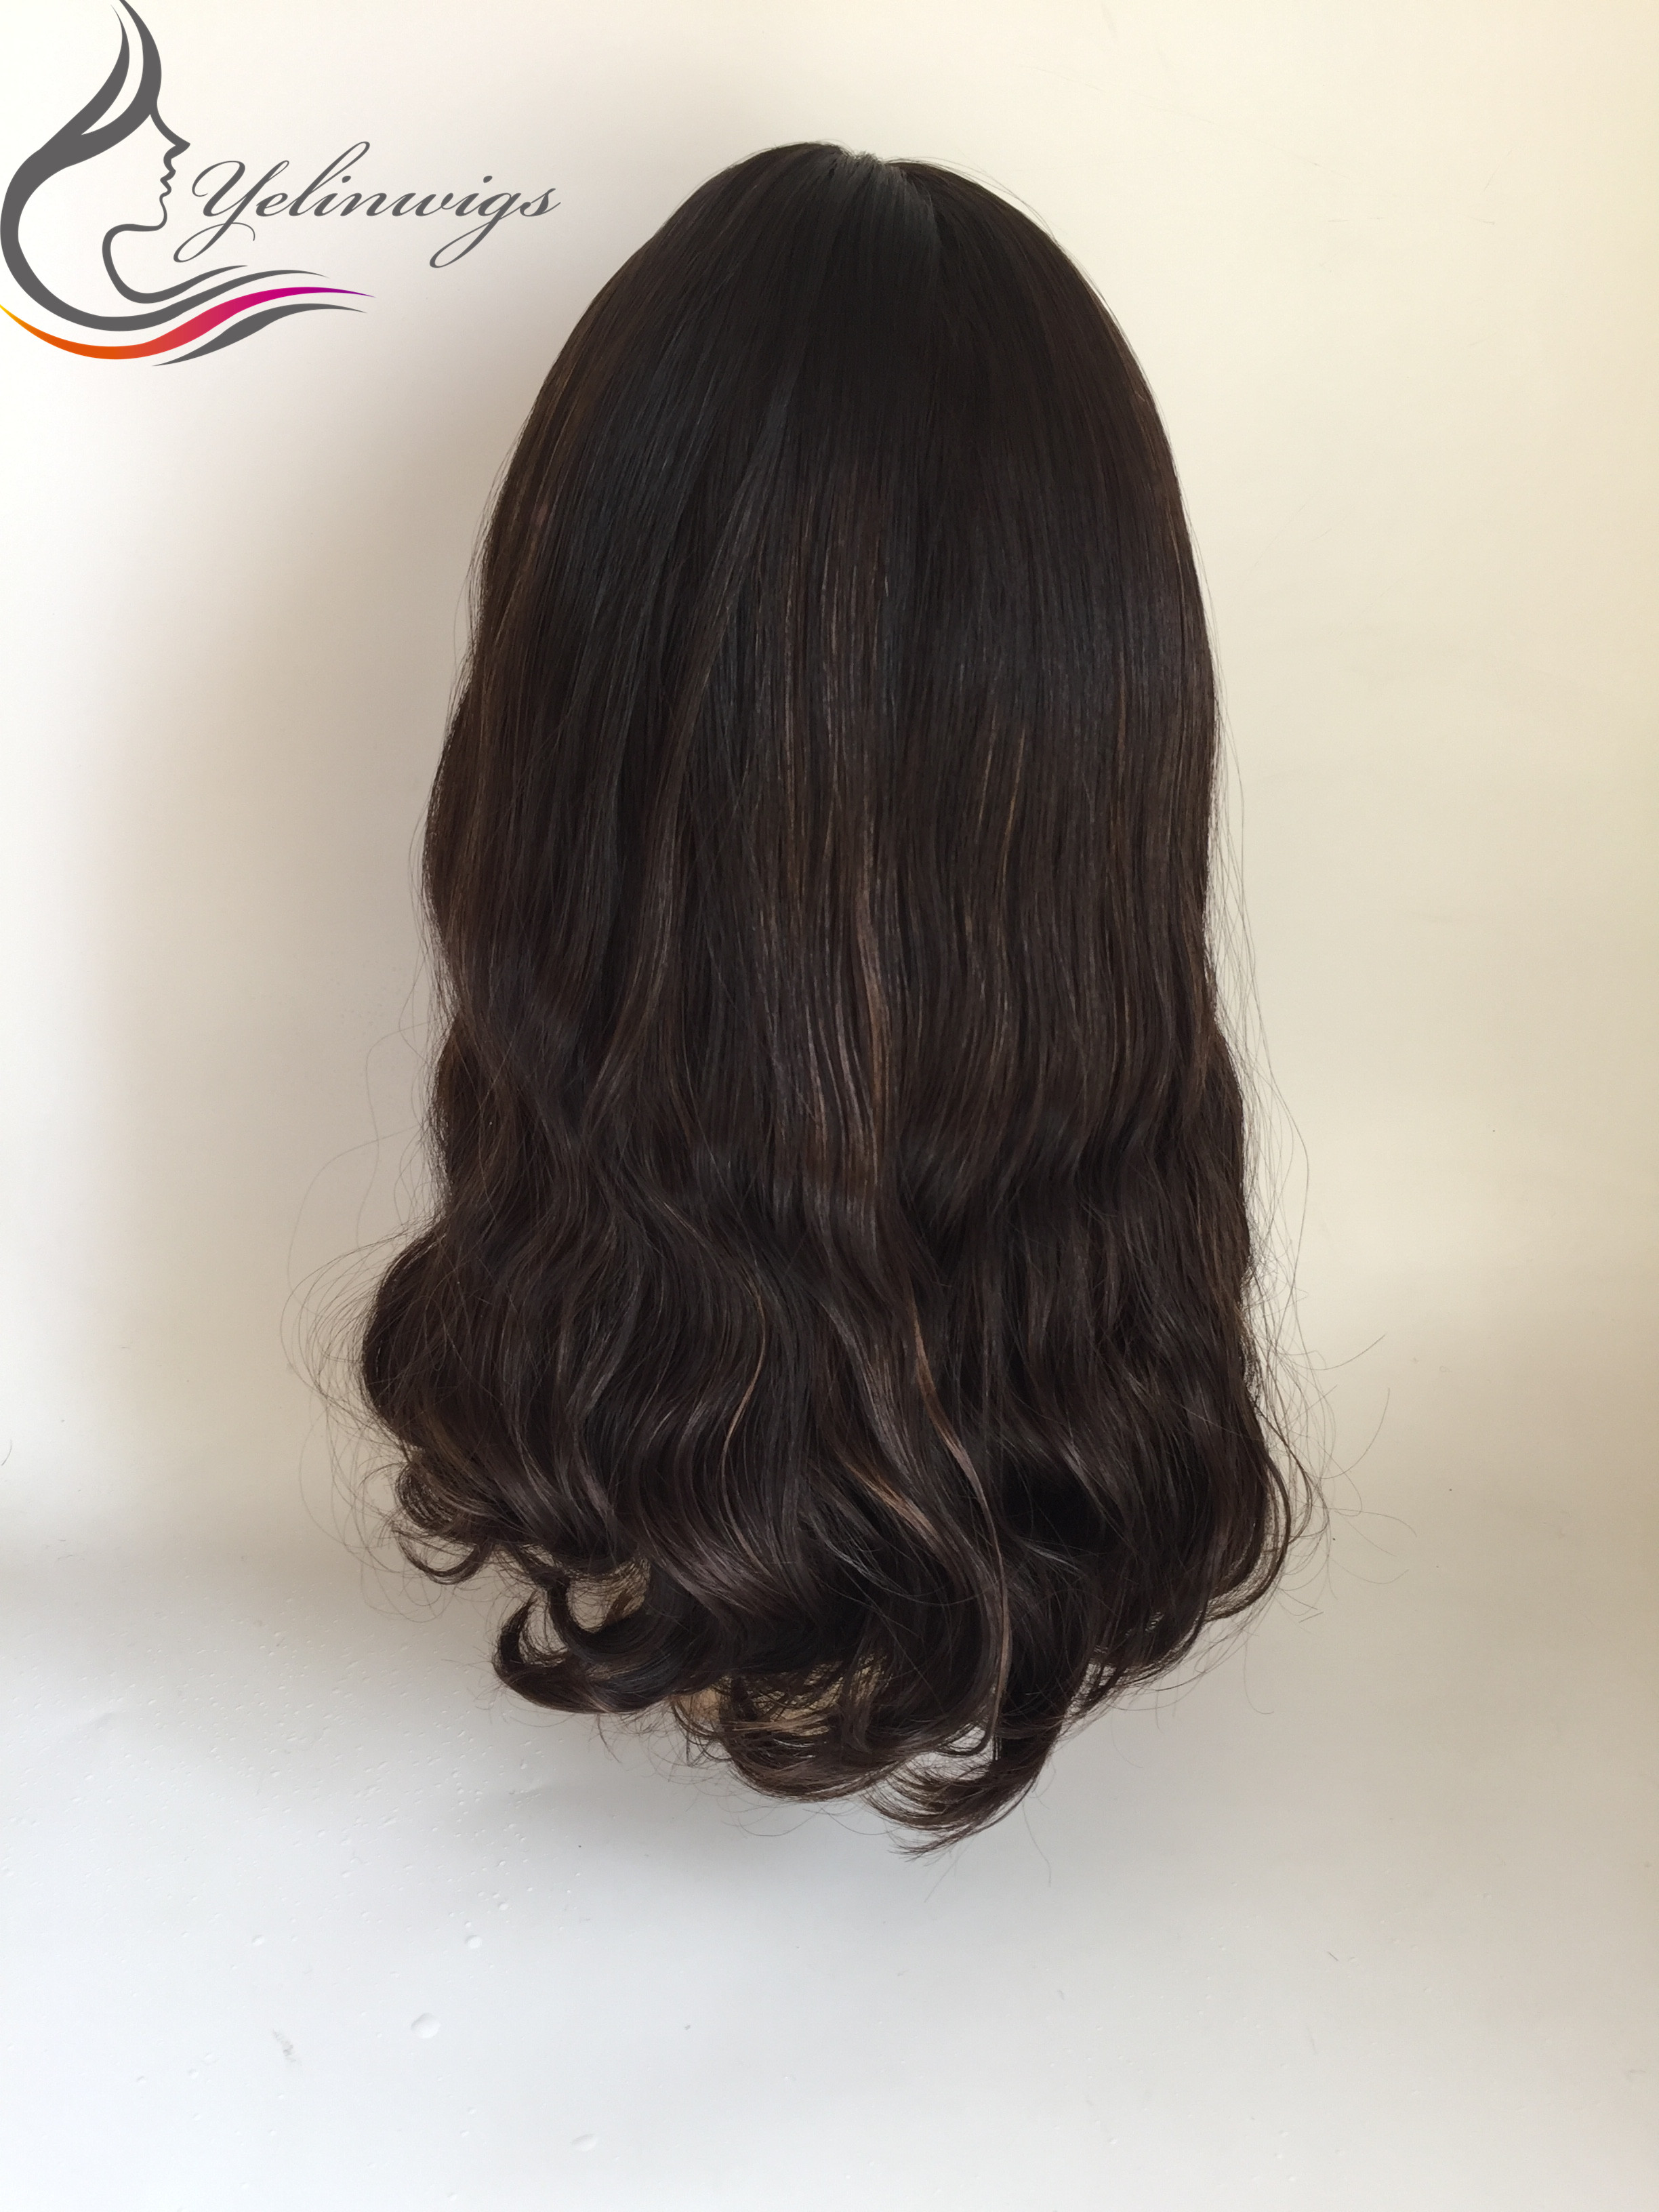 High-end European Virgin Wavy Hair Jewish Wig Kosher Wig 4/6 Highlight Color European Hair Lace Front Wig For Jewish Women